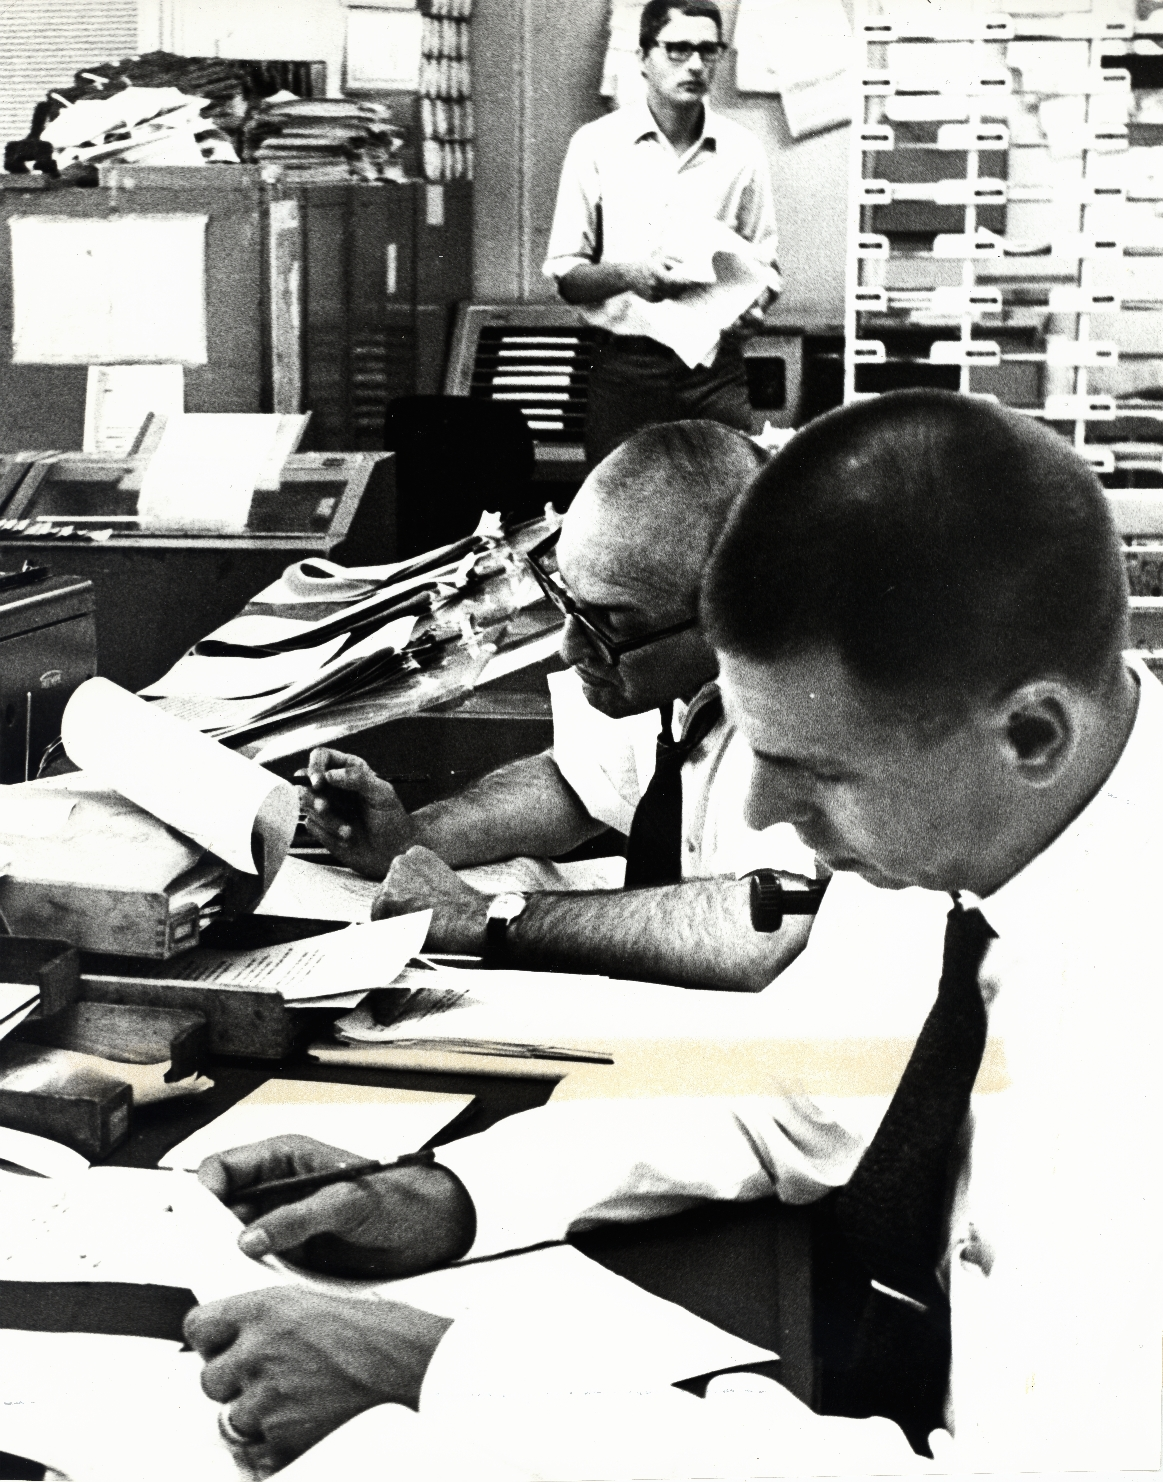 RFE COVERS THE MIDDLE EAST CRISIS -- In the Central News Room of Radio Free Europe headquarters in Munich, Germany, RFE editors examine latest dispatches on the Arab-Israeli war. RFE kept its 22 listeners in East Europe informed with up-to-the-minute bulletins on developments in the conflict. June 1967.